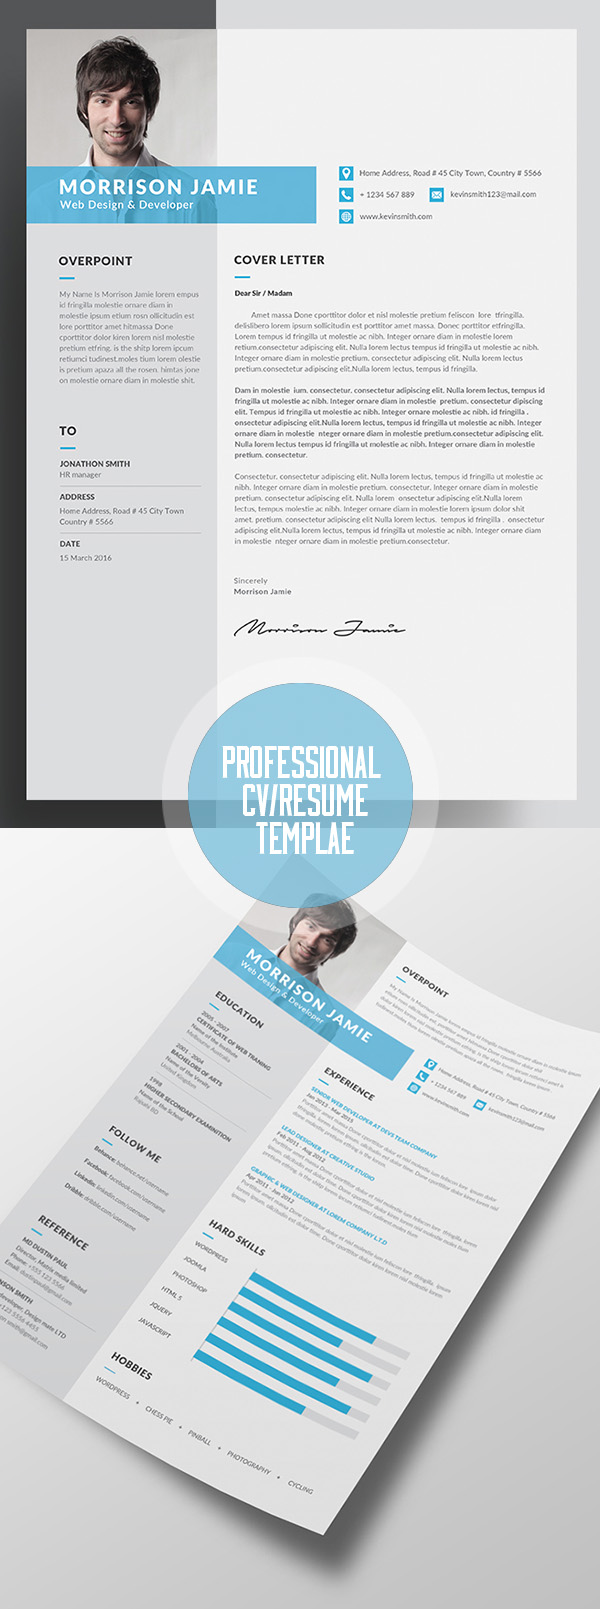 professional cv resume templates and cover letter design professional resume cv template